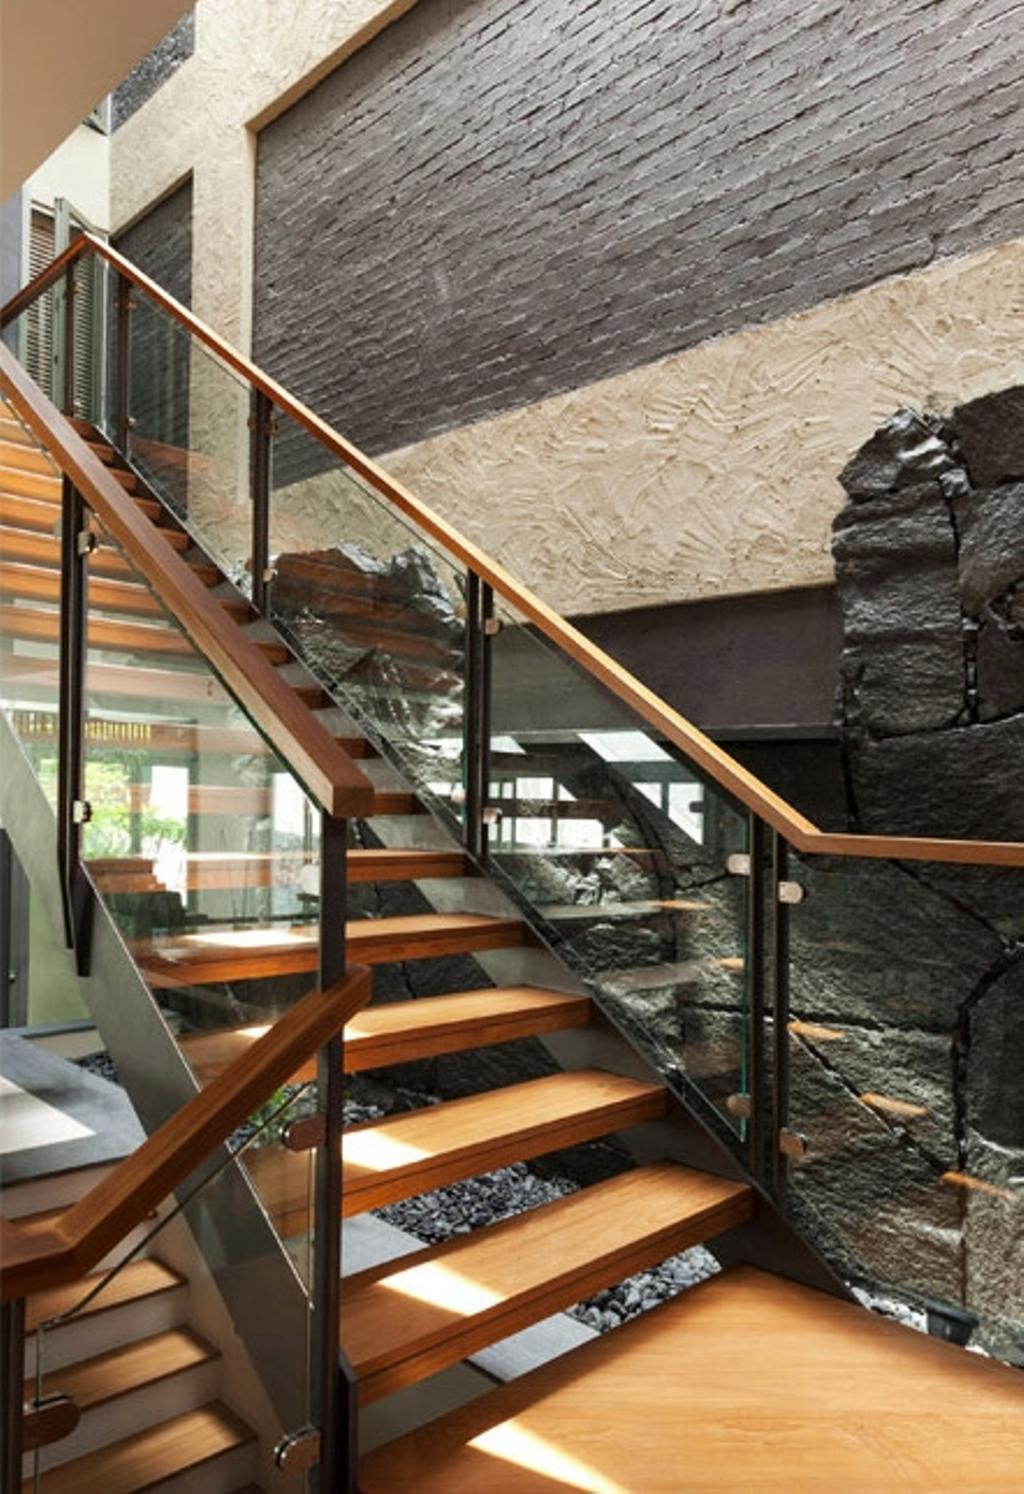 Transitional, Landed, Clementi Crescent, Architect, Timur Designs, Banister, Handrail, Staircase